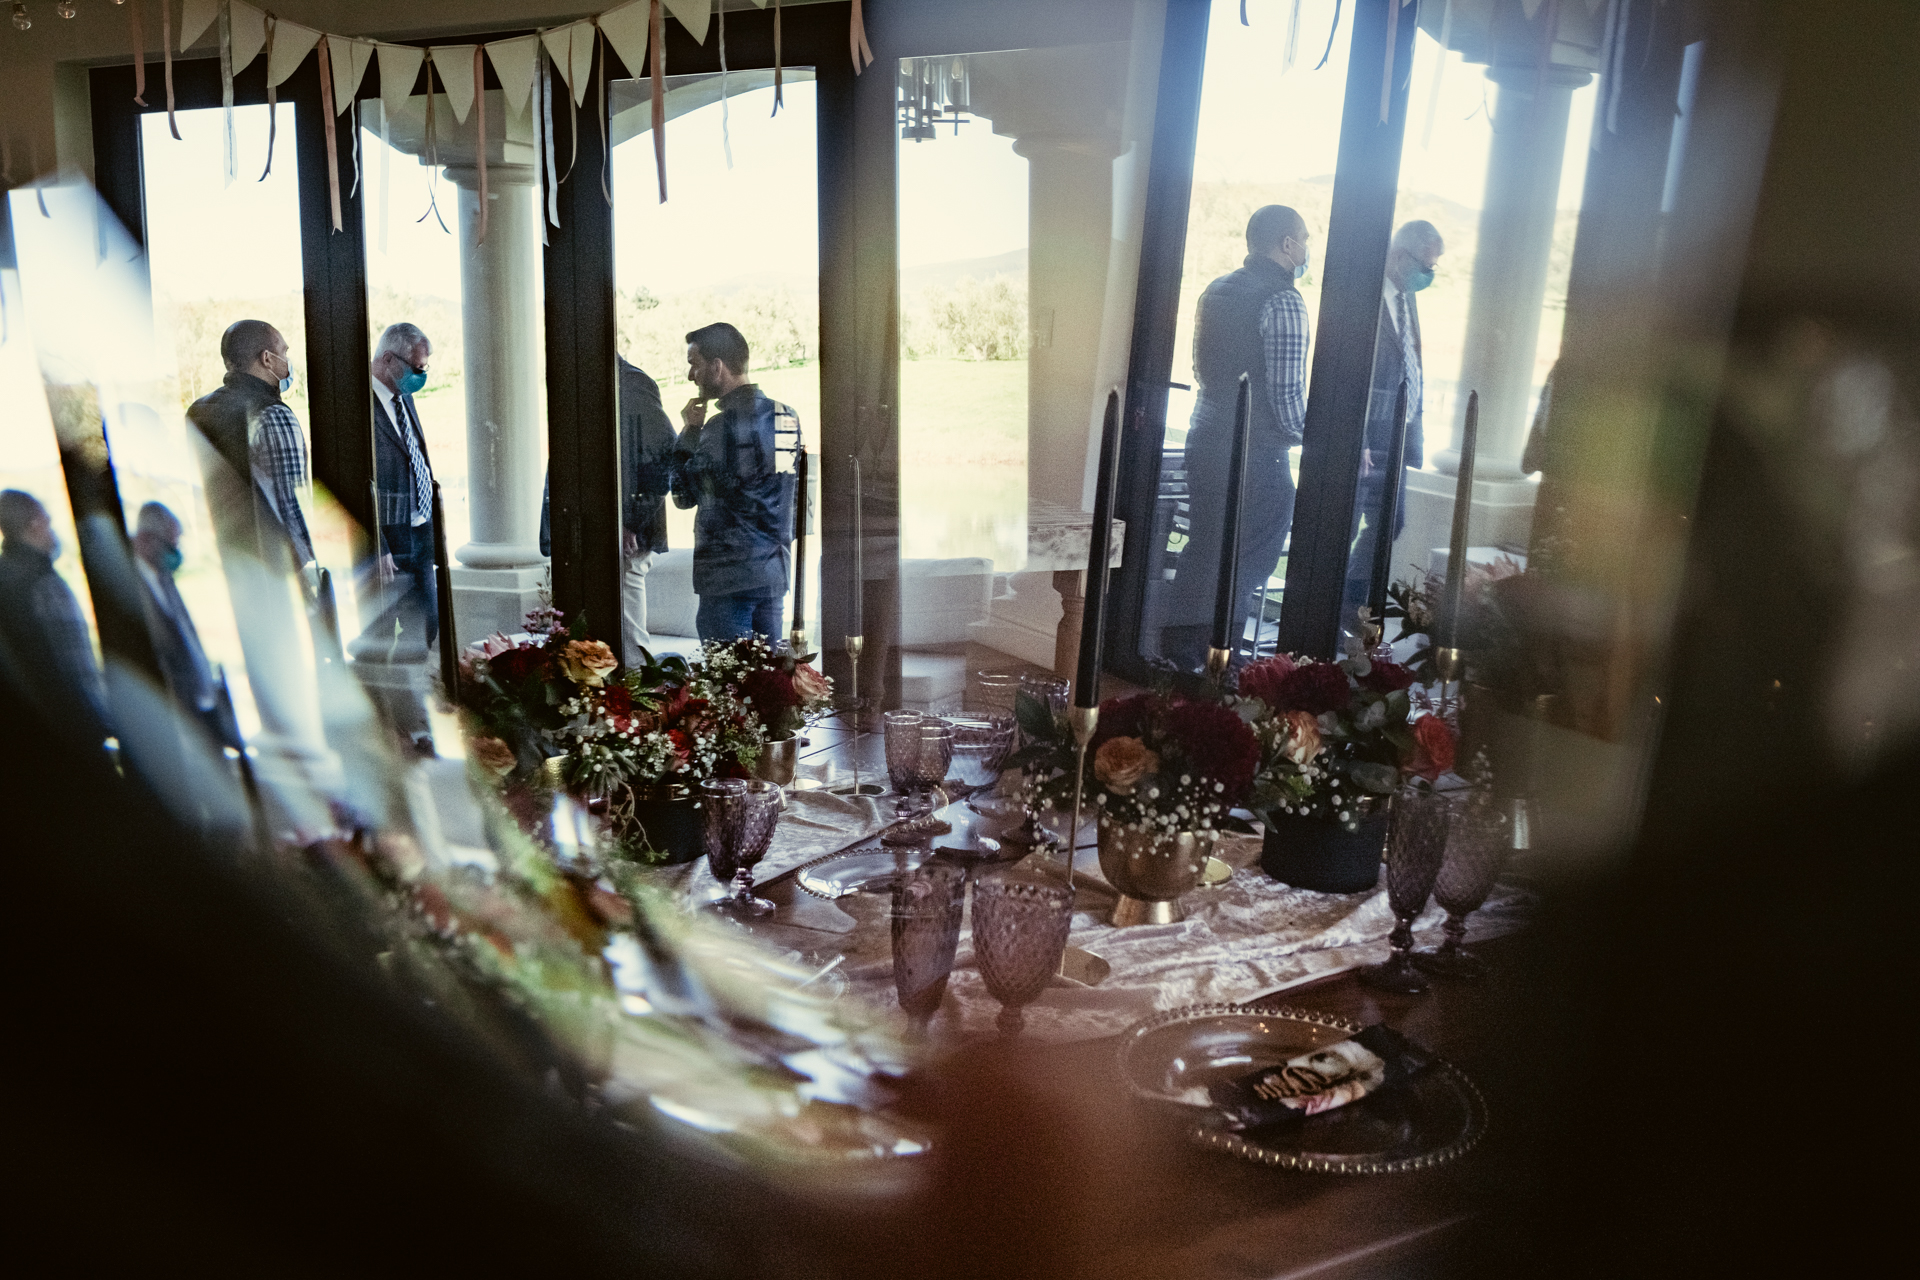 Franschhoek Wedding Venue Photography | A creative photo of the guests waiting for the bride to arrive